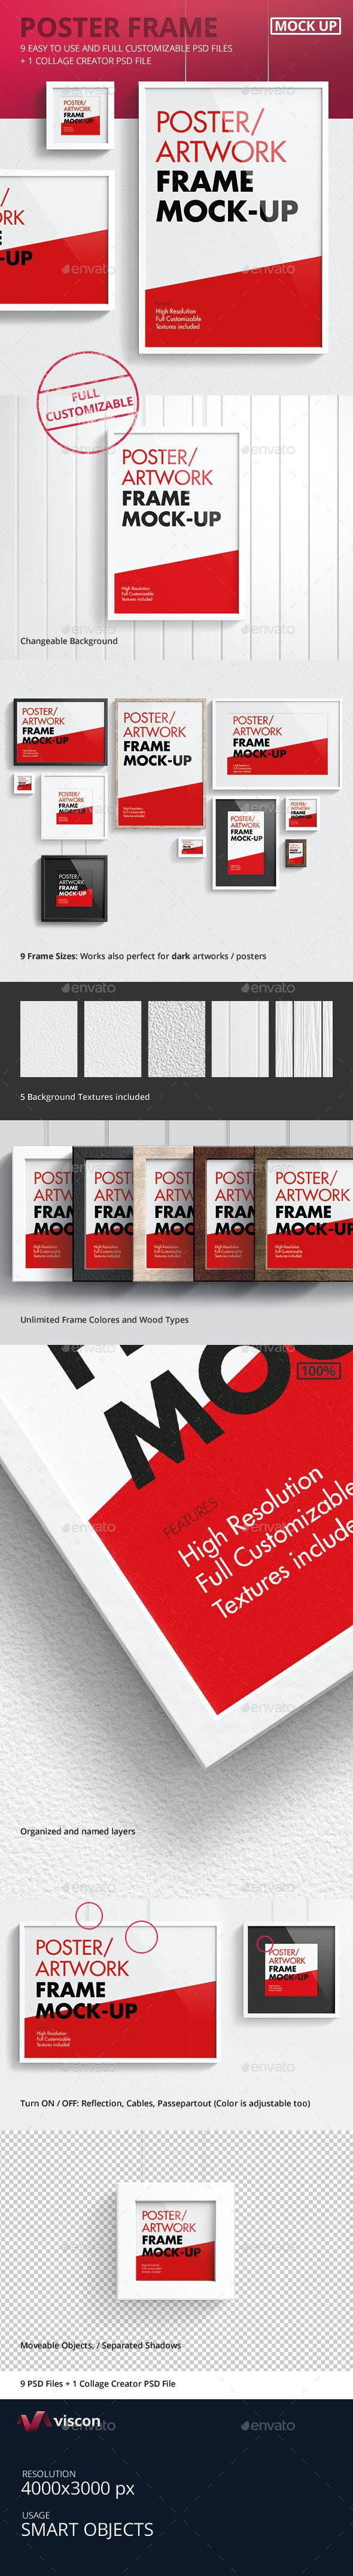 Poster / Artwork Frame Mock-Up - Posters Print